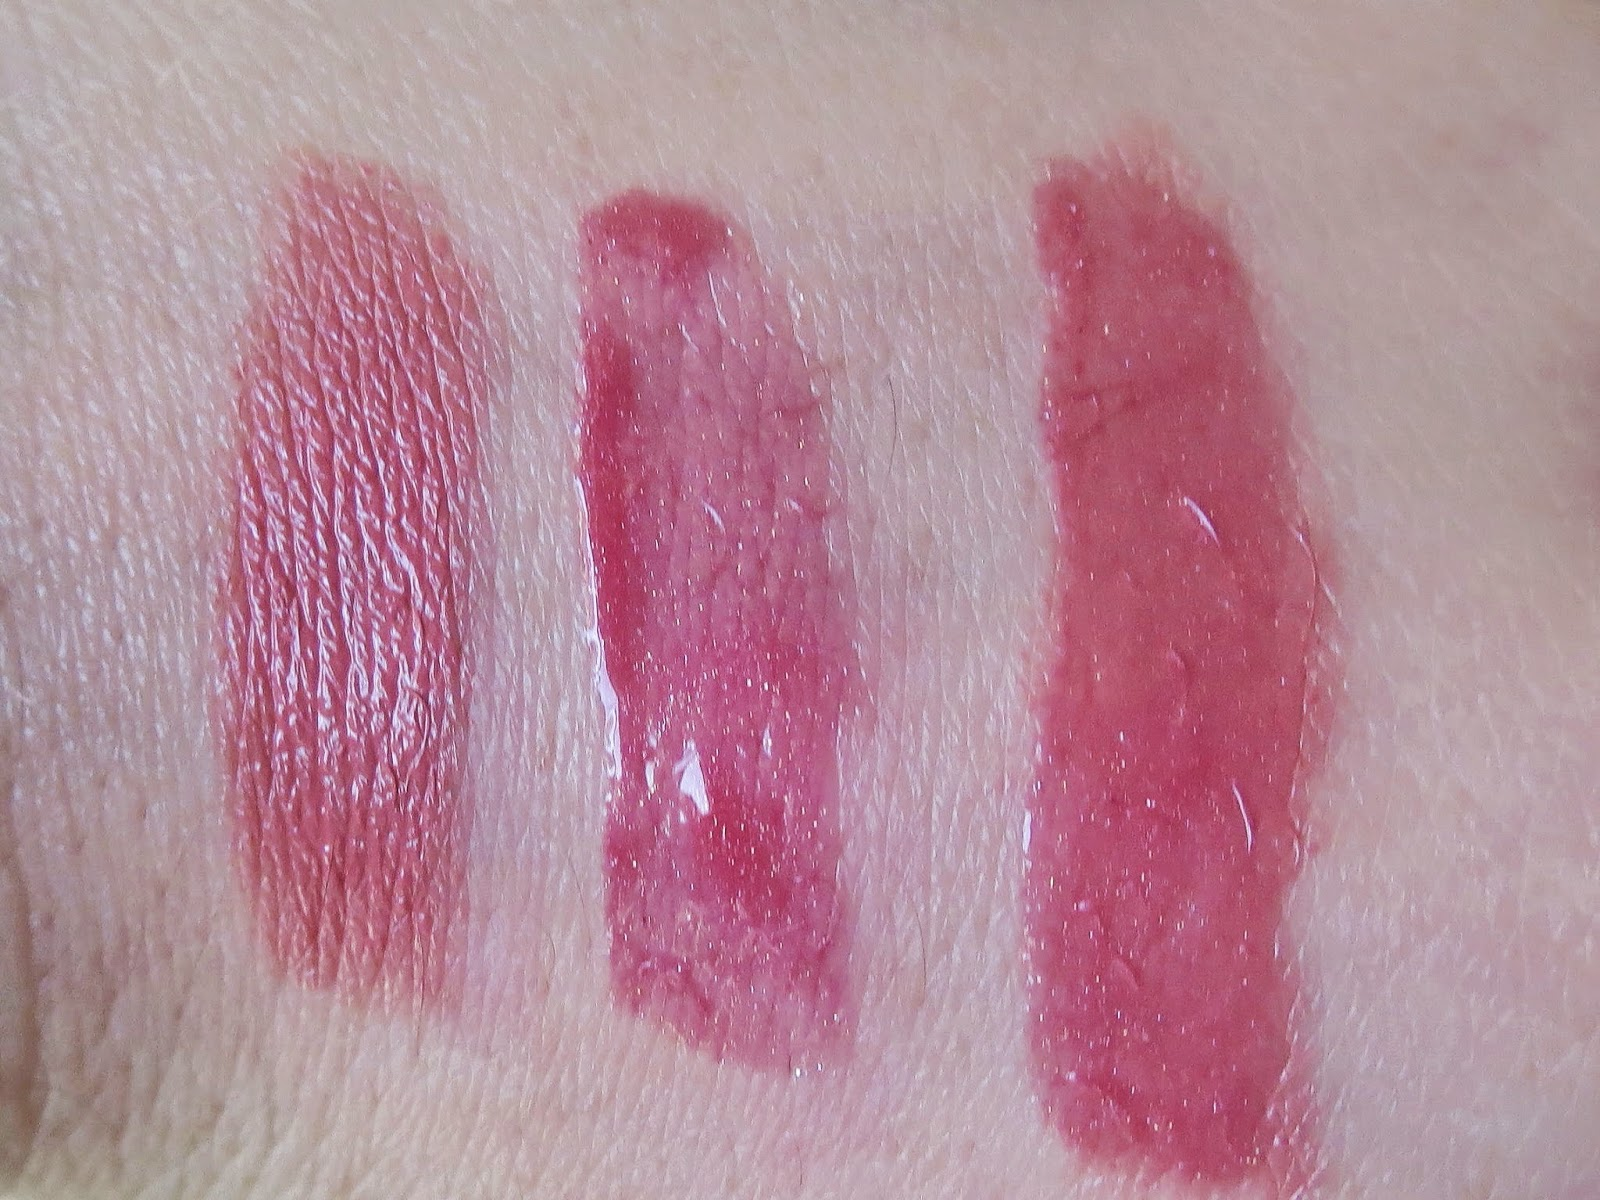 a picture of Rimmel Moisture Renew Lipstick in Let's Get Naked and Laura Mercier Lip Glace in Rose